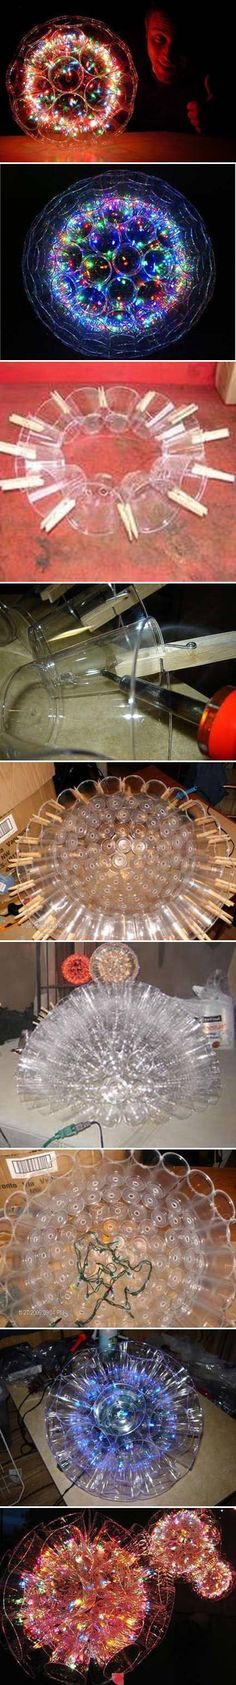 THis is an interesting idea... As long as the lights don't melt the plastic!